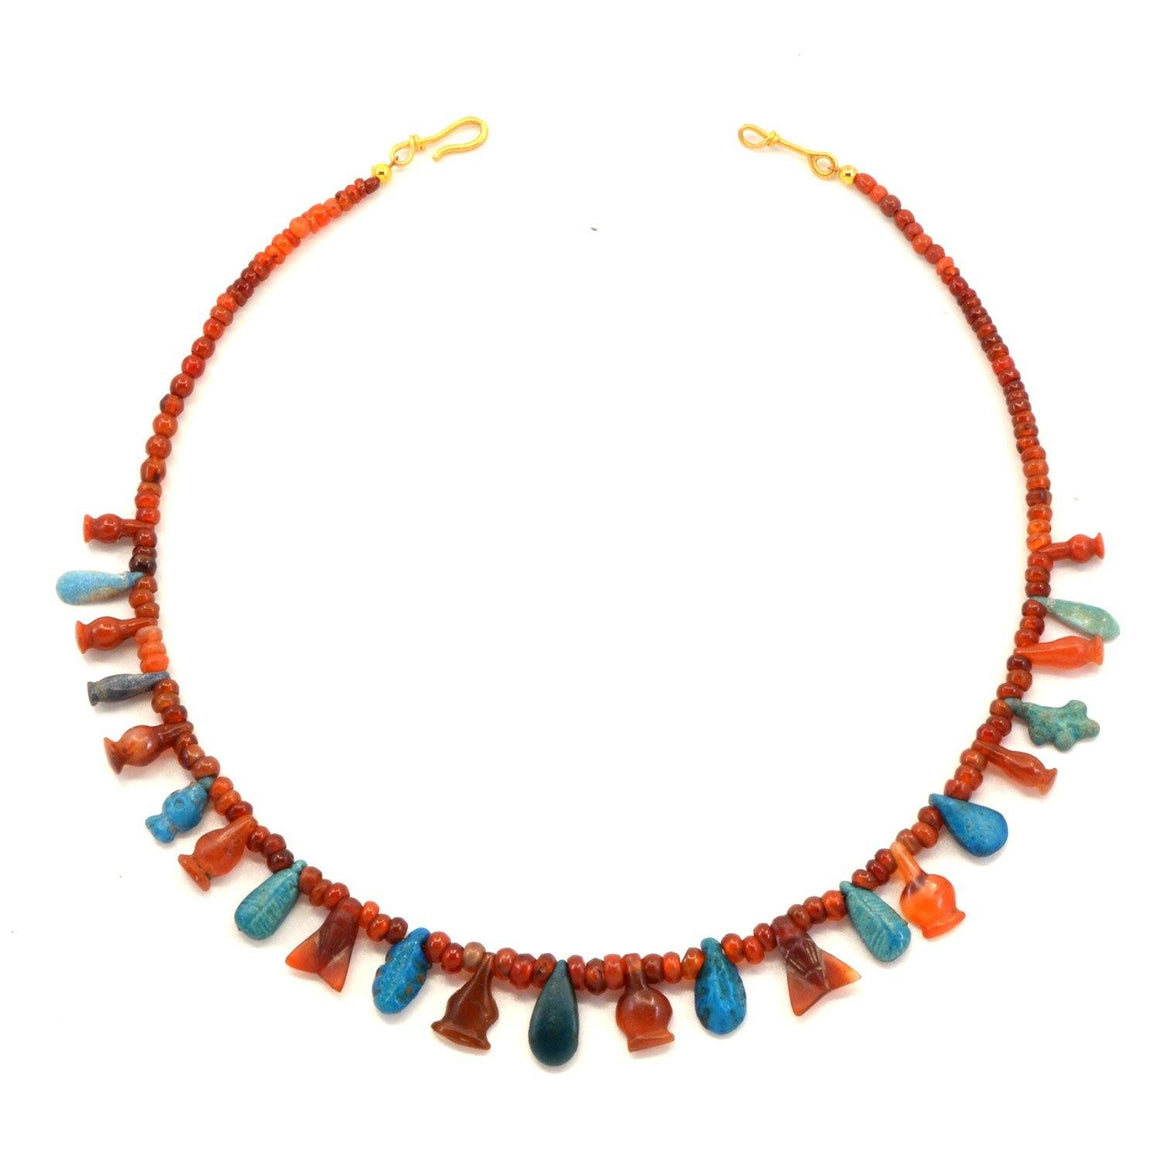 * An Egyptian Carnelian and Faience Bead and Pendant Necklace, New Kingdom, ca 1550 - 1069 BCE - Sands of Time Ancient Art